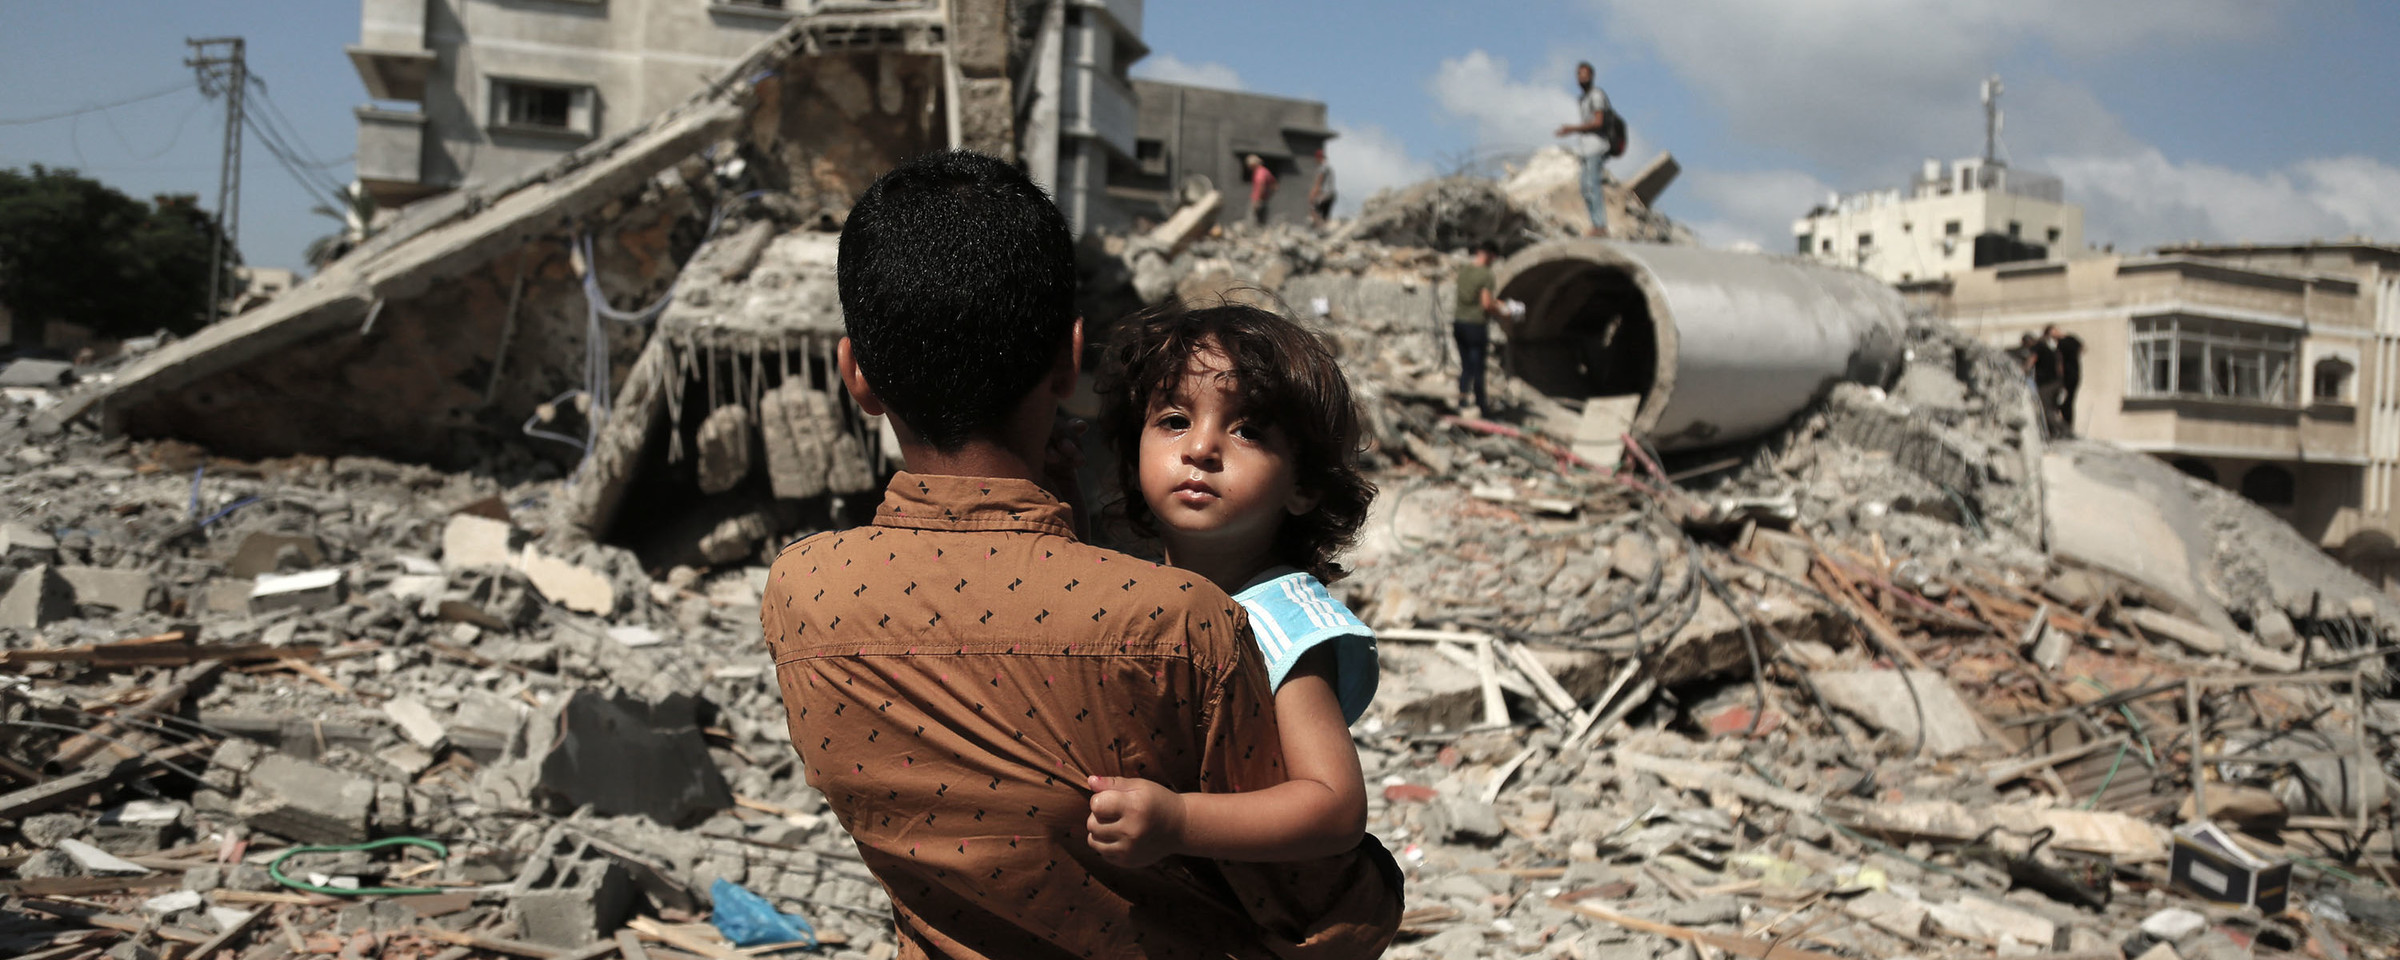 Photo shows back of boy holding small child as the boy stands in front of ruins in urban landscape